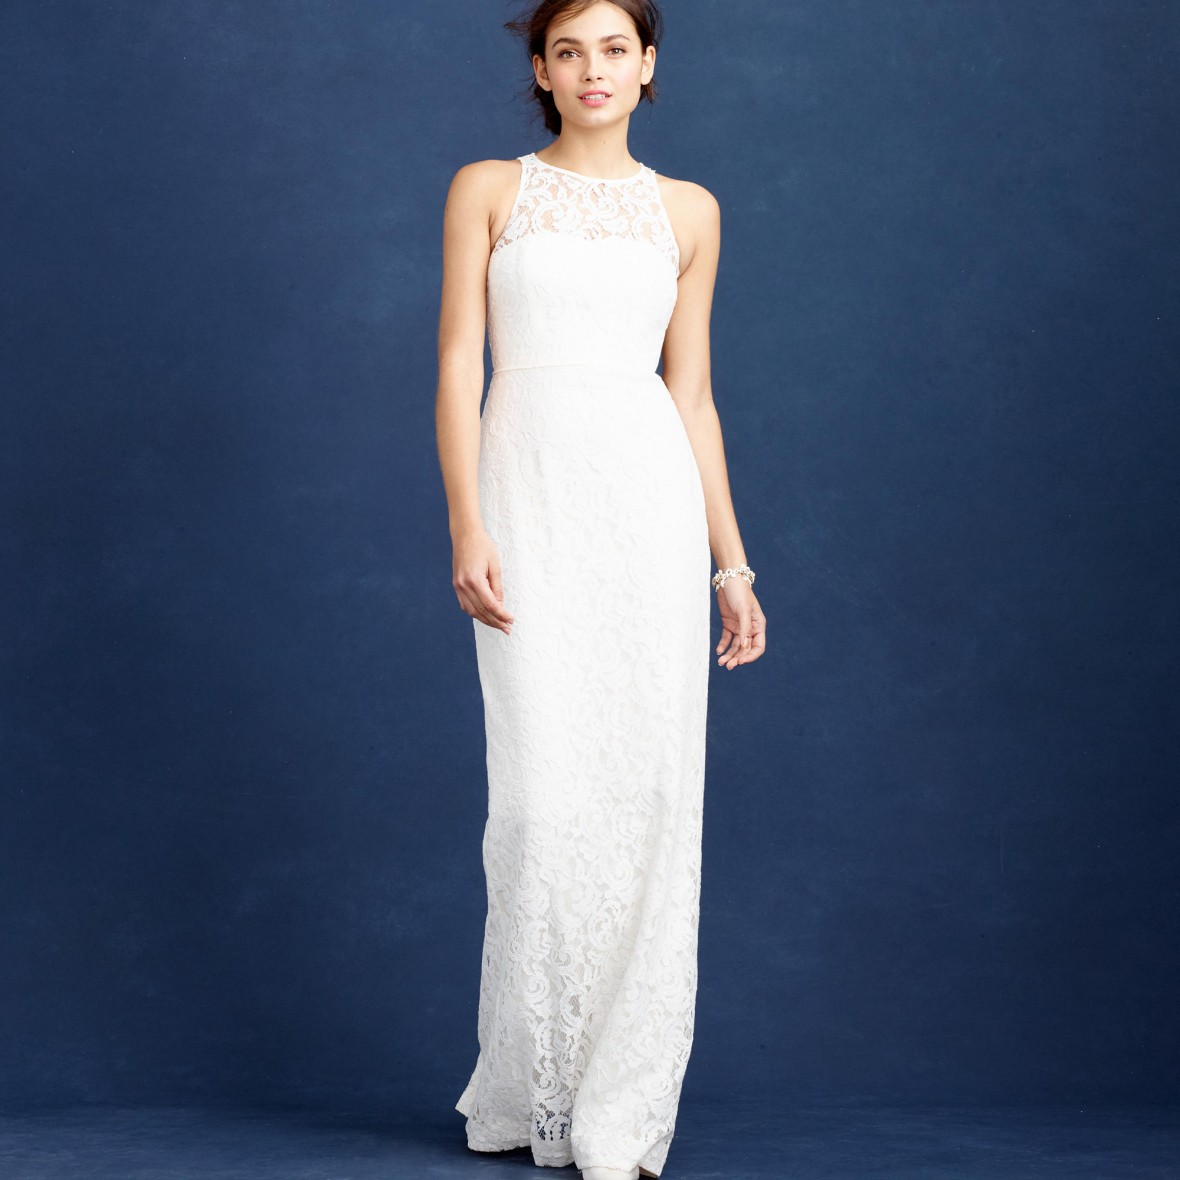 J.Crew Pamela Wedding Dress